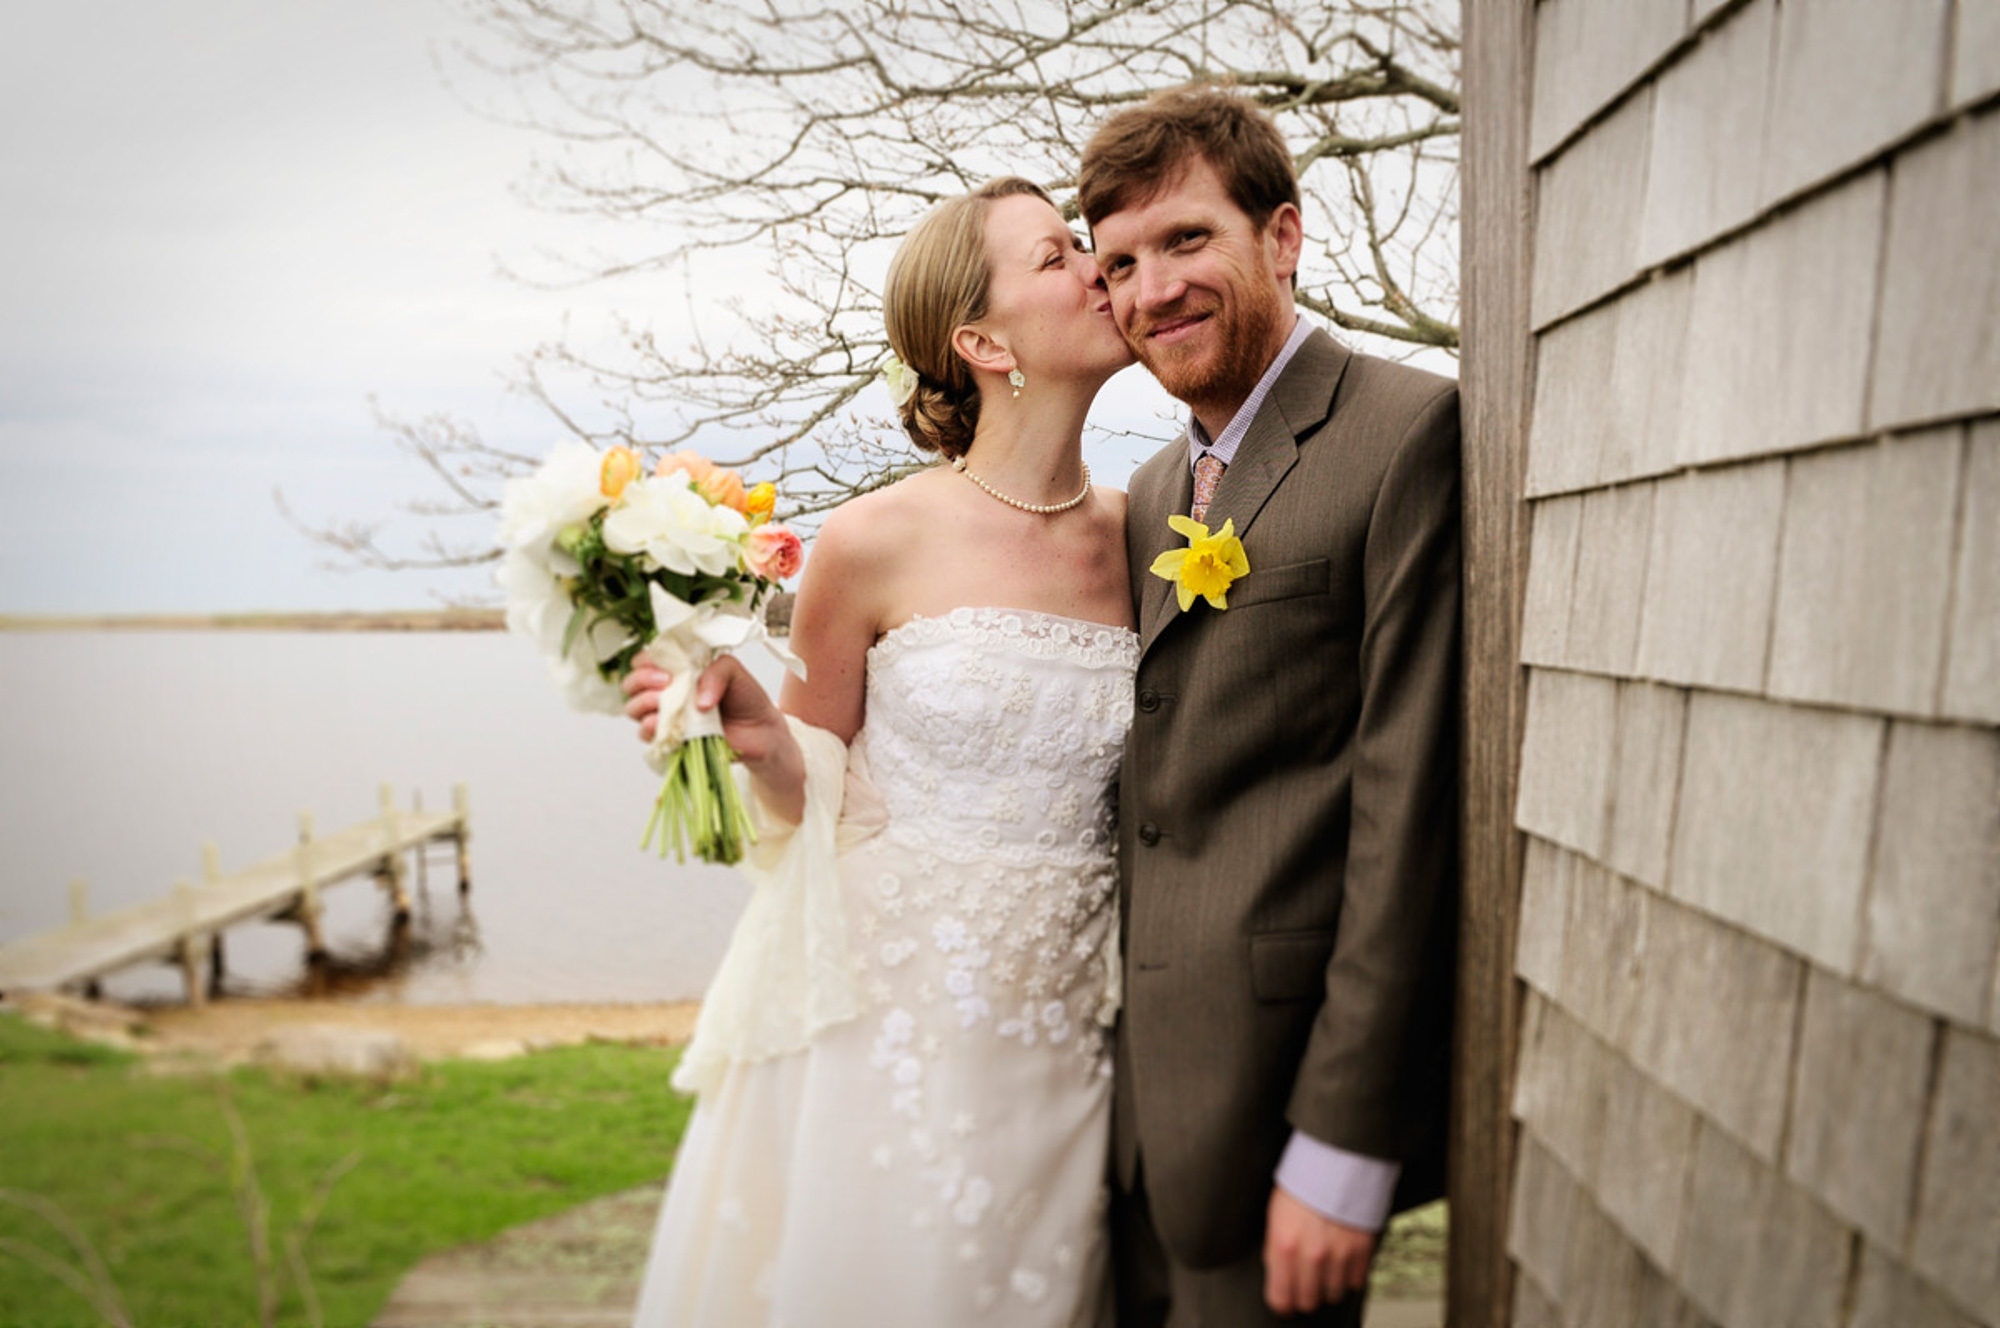 A bride and groom posing at Allen Sheep Farm in Chilmark photo by David Welch Photography